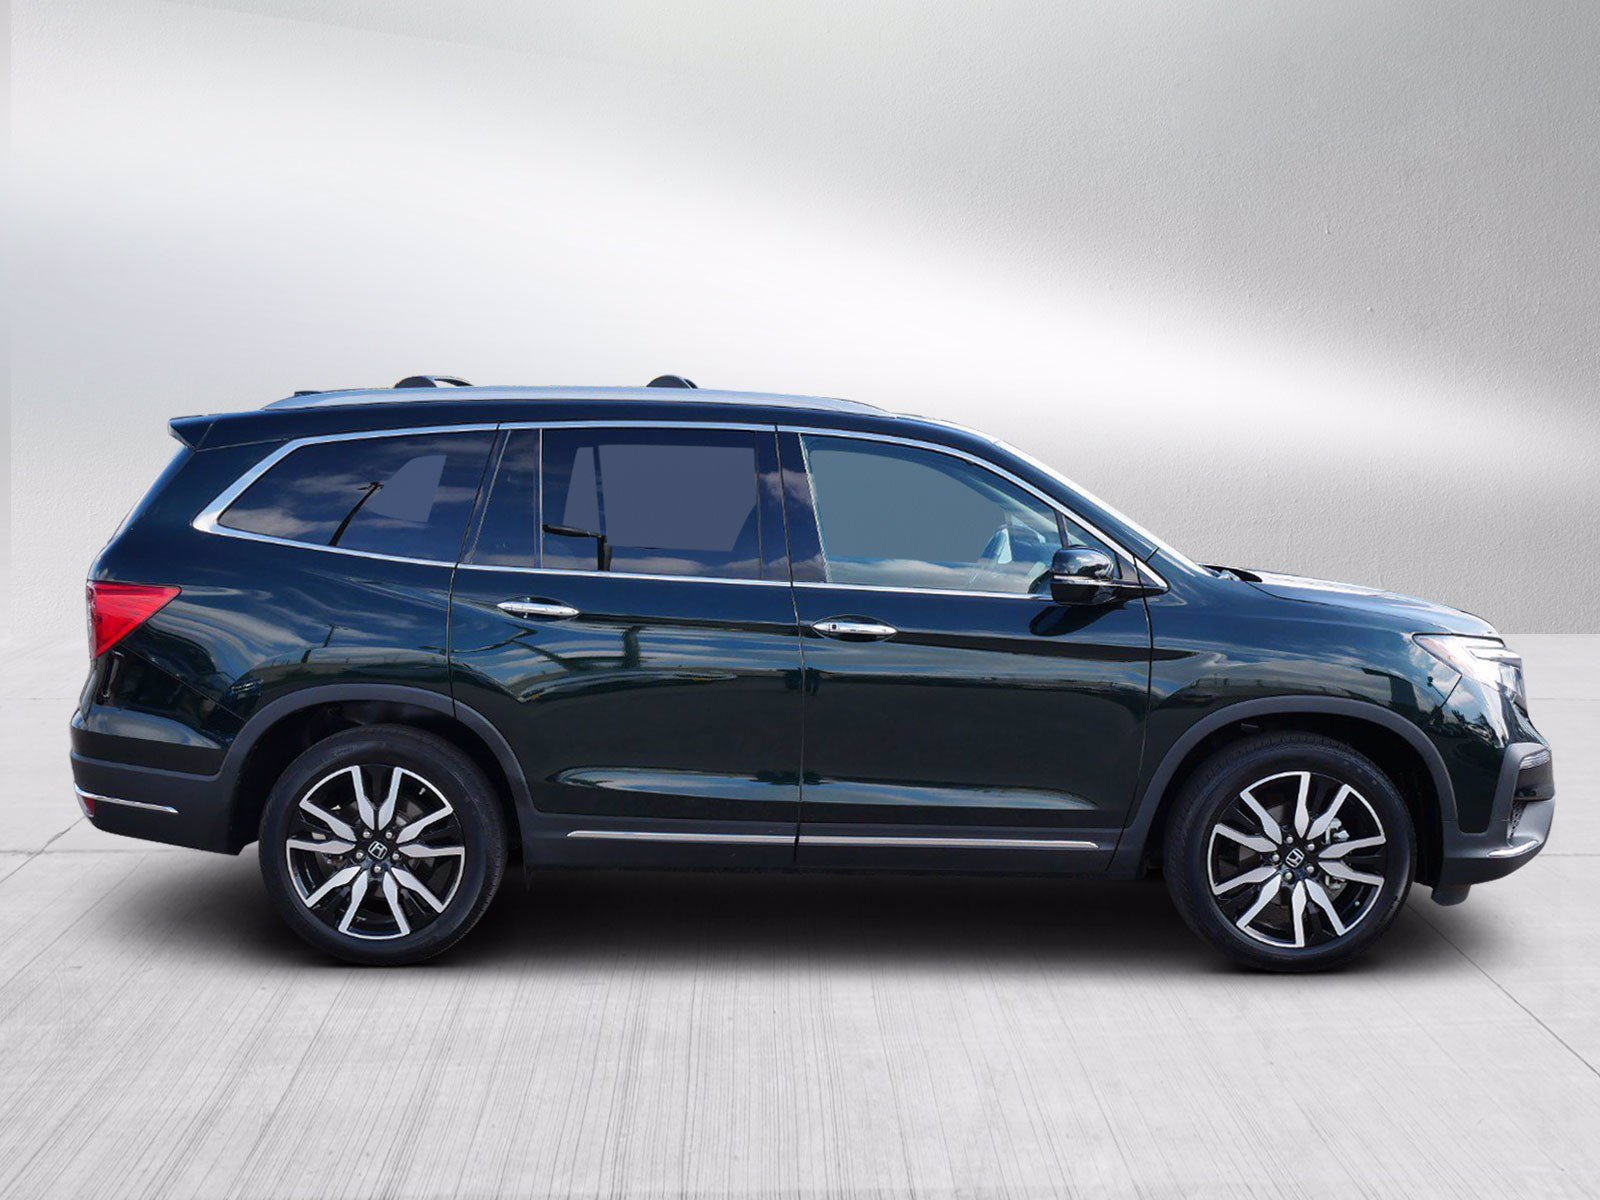 Used 2019 Honda Pilot Touring with VIN 5FNYF6H66KB036759 for sale in Bloomington, Minnesota